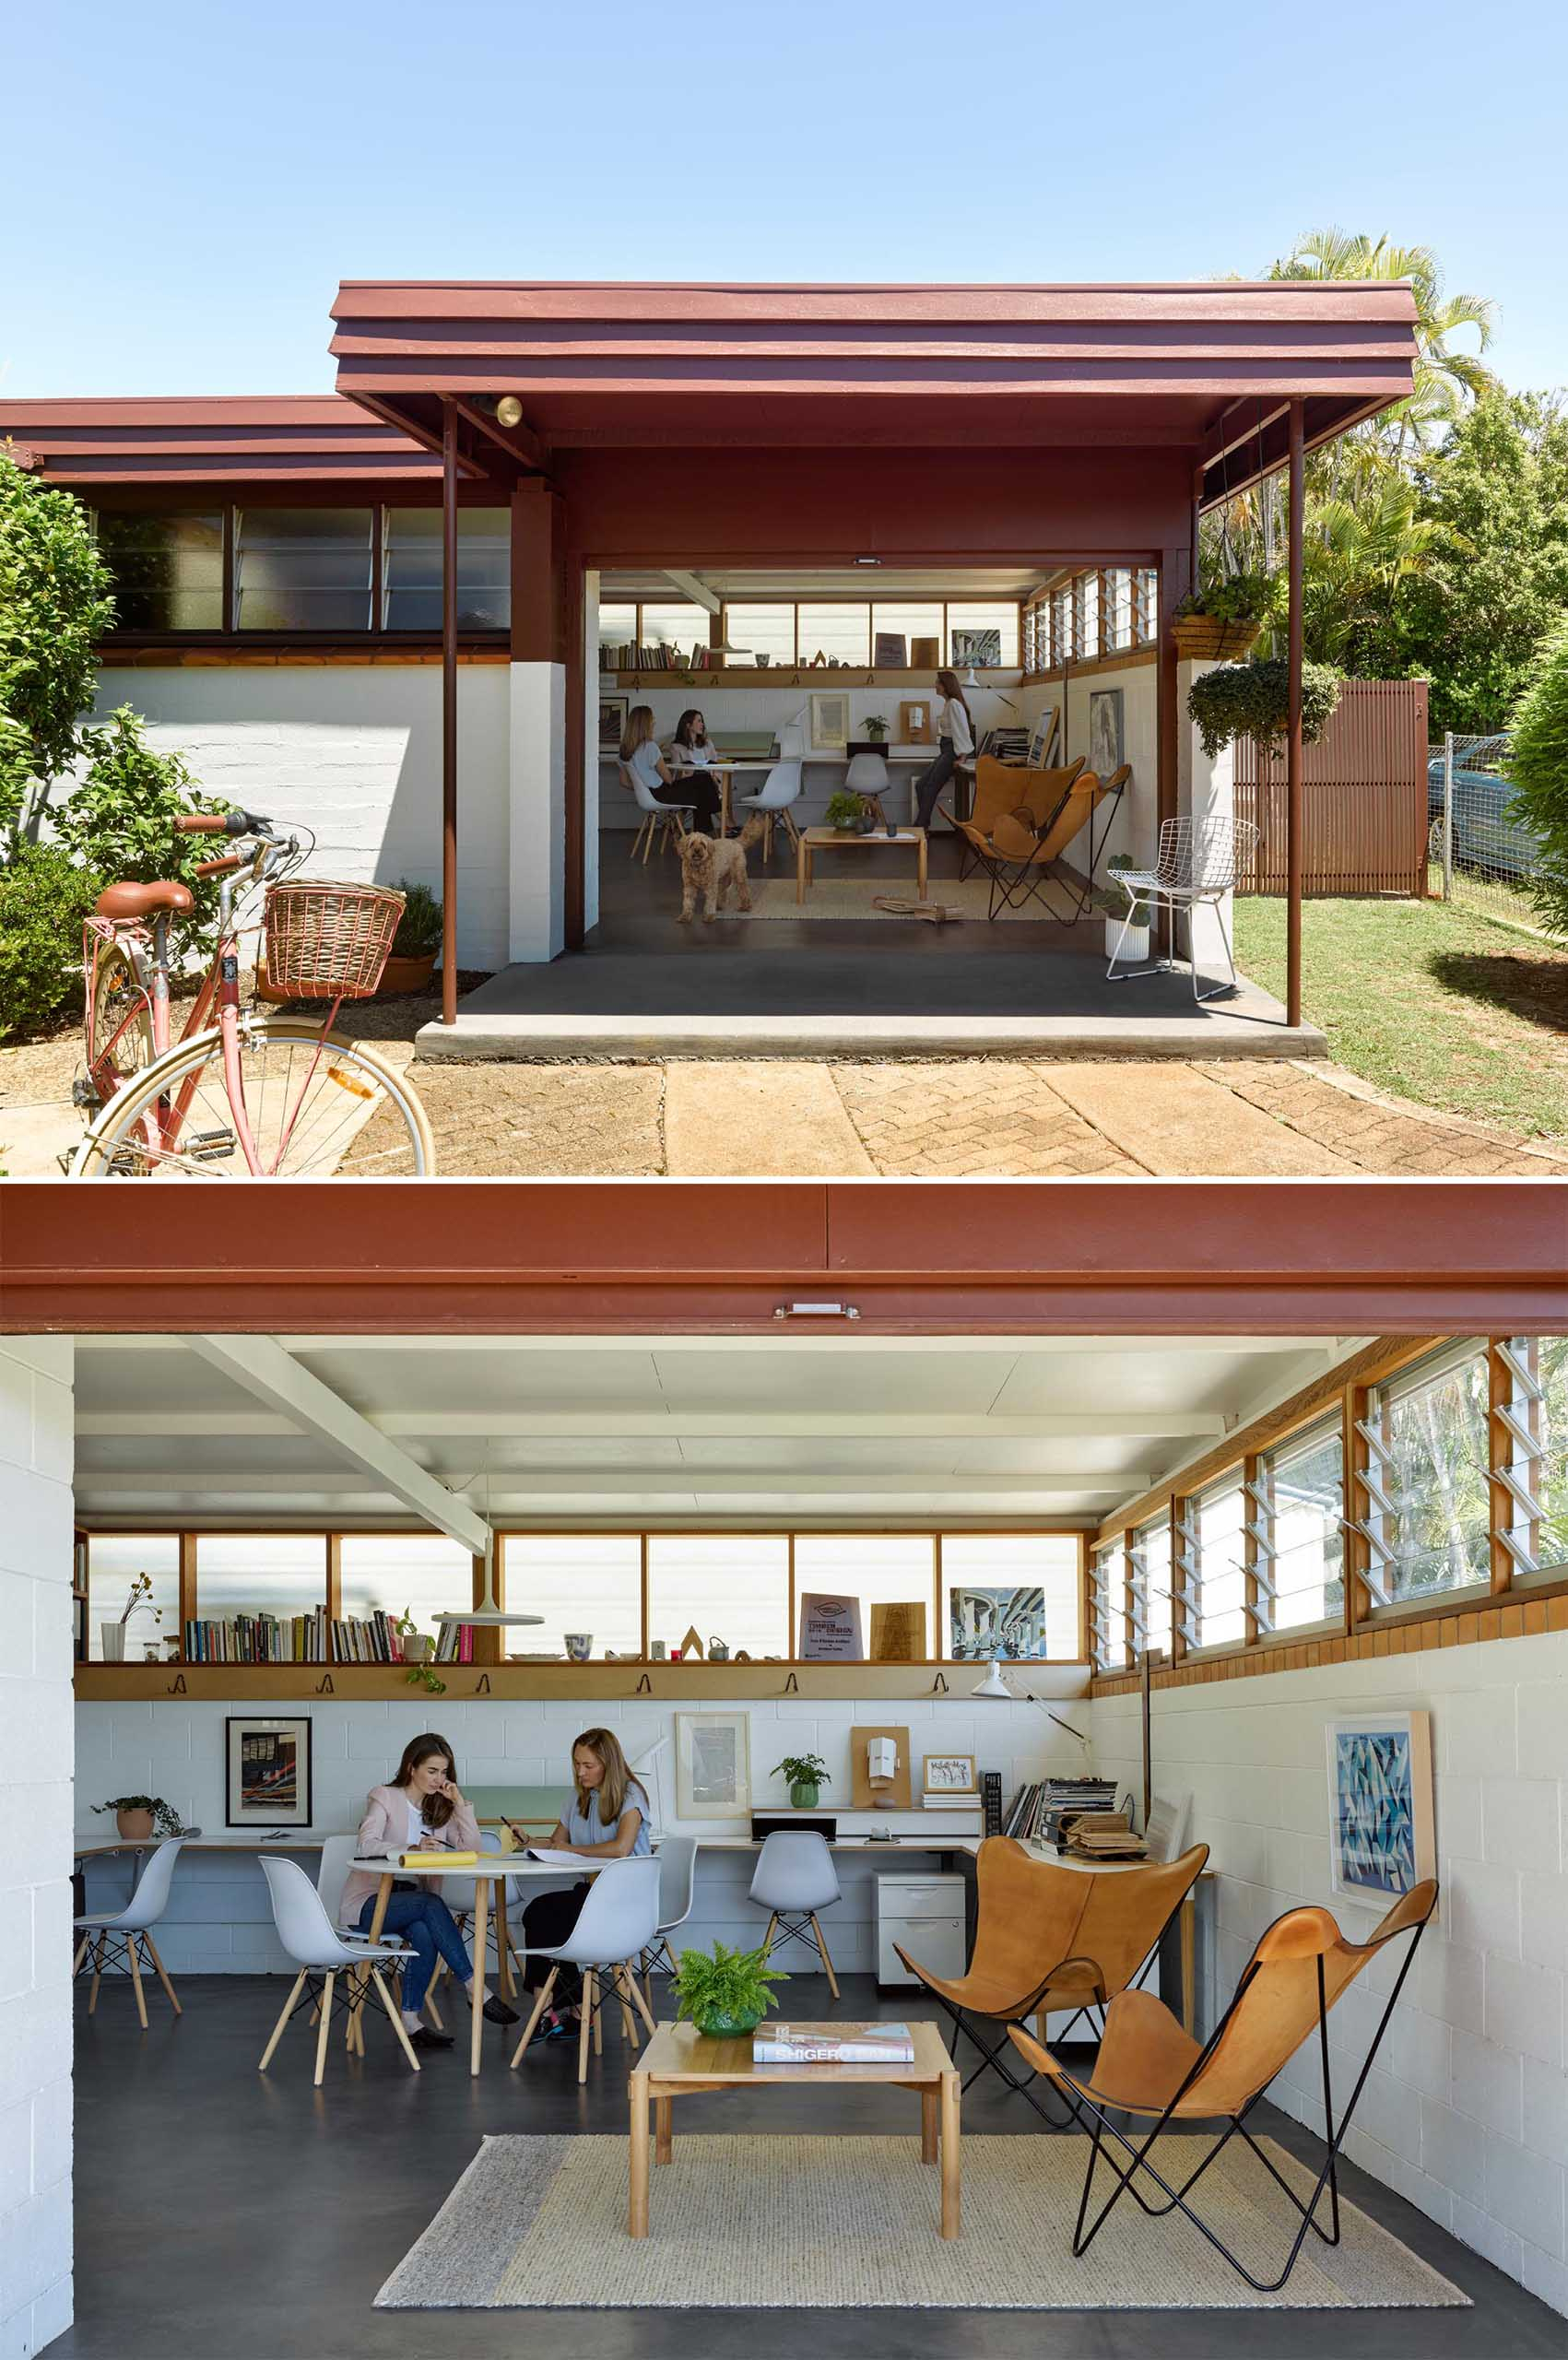 A converted carport acts as an office for 4-5 people, and can be transformed into a secondary suite if needed one day.